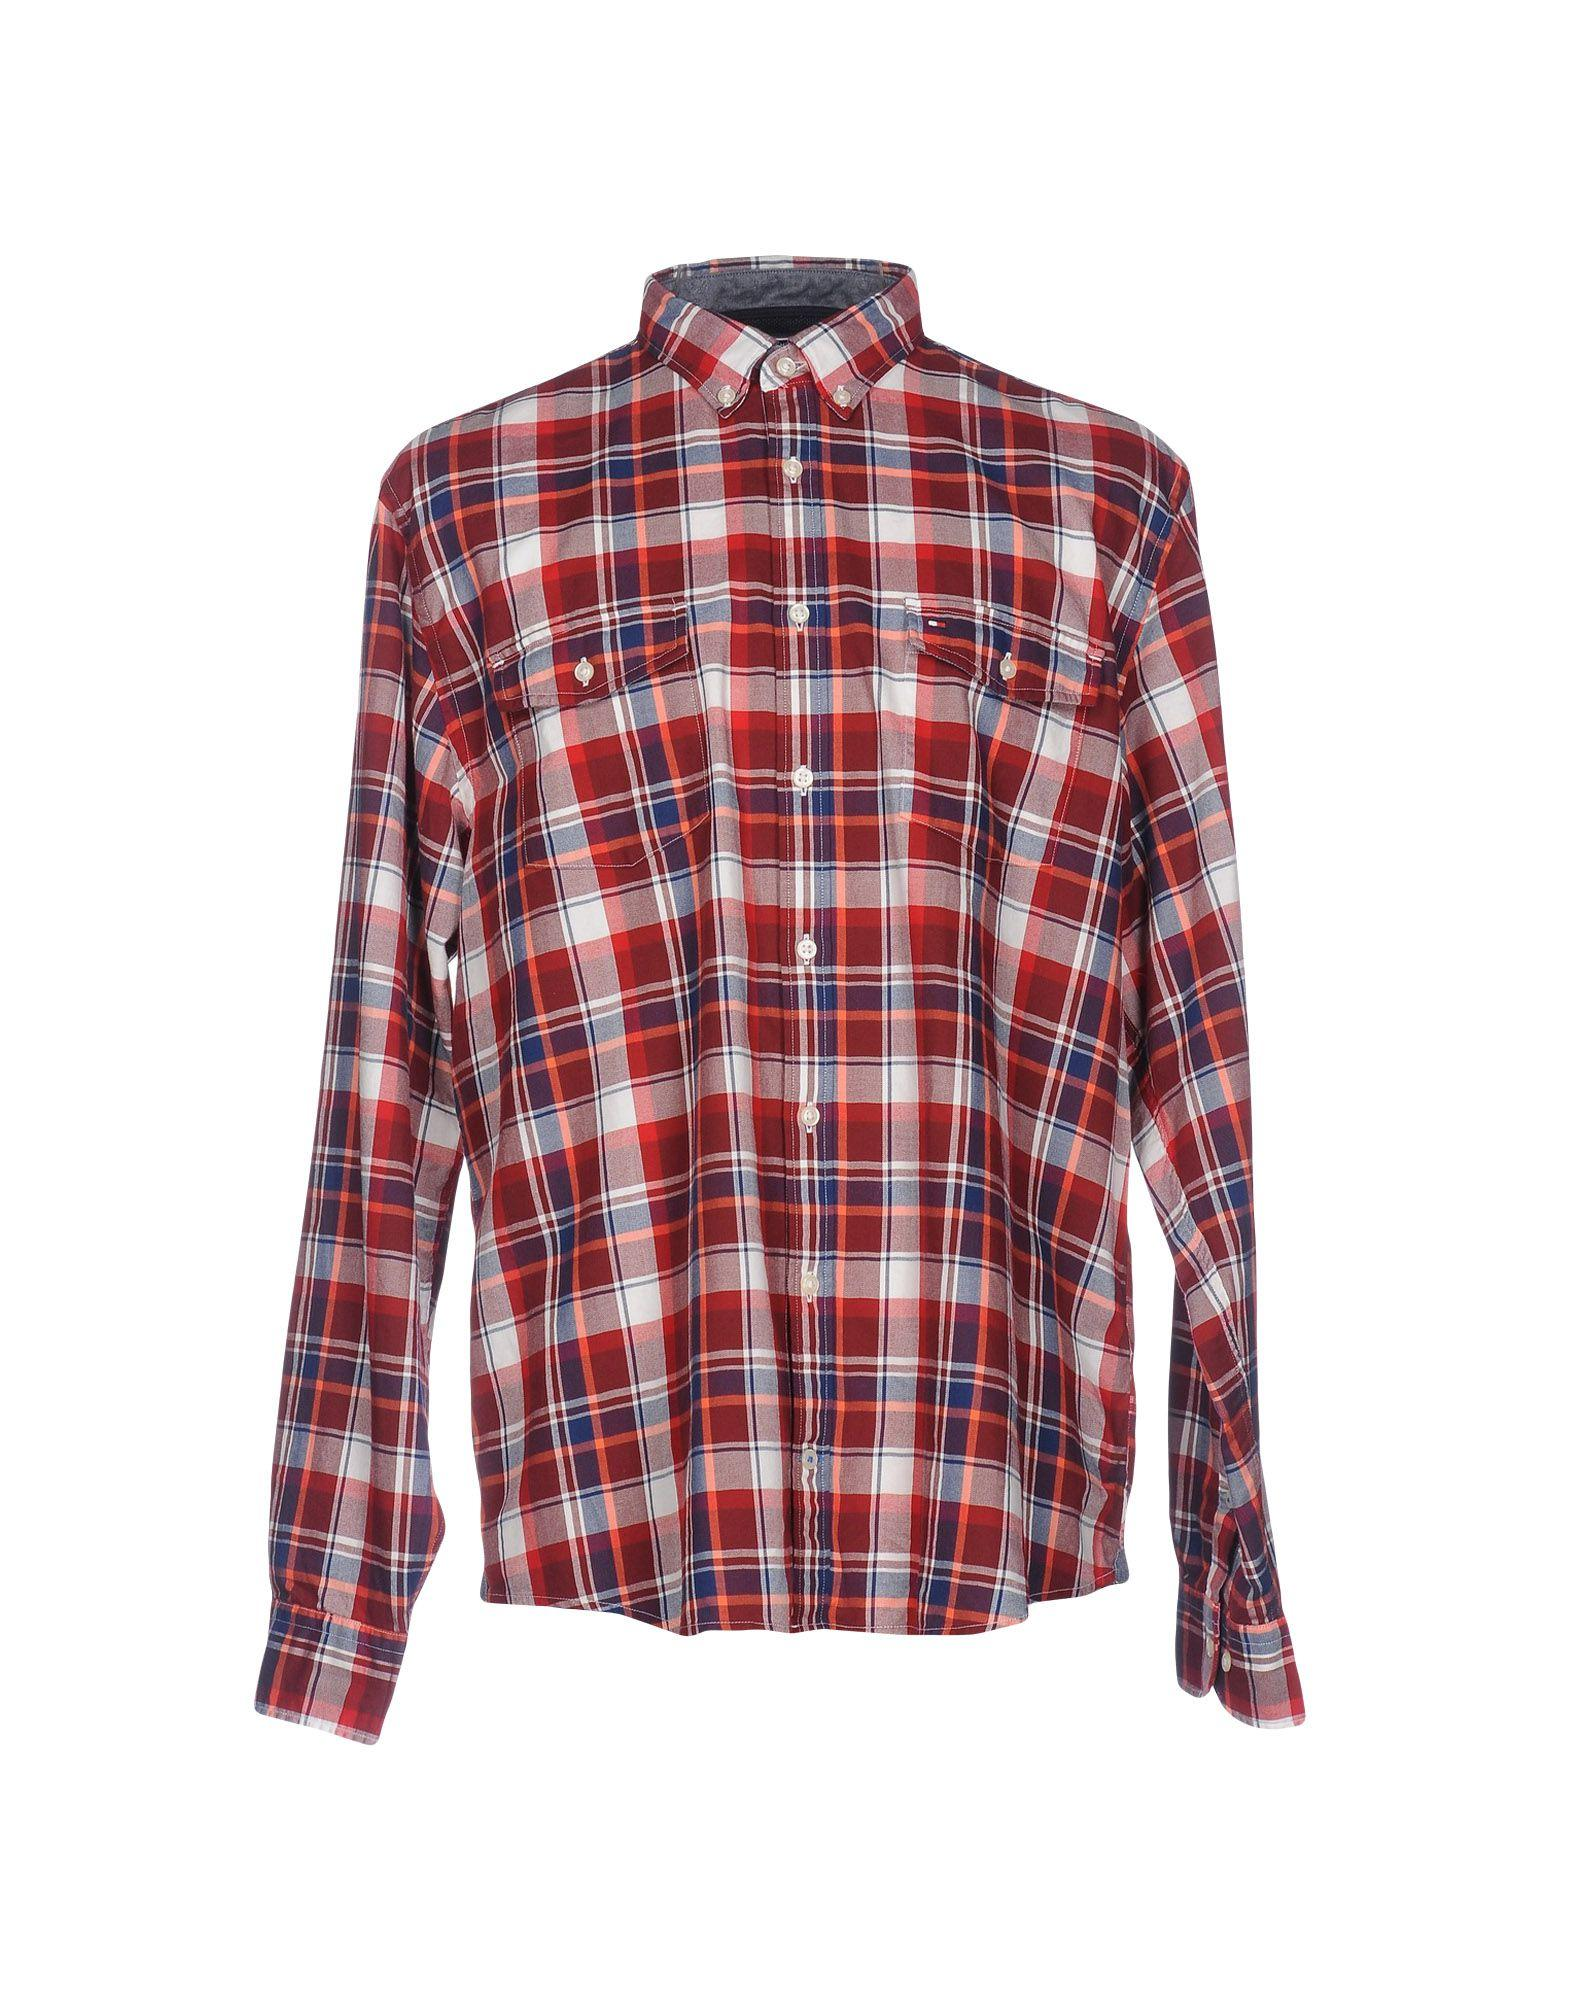 Lyst tommy hilfiger shirt in red for men for Bear river workwear shirts